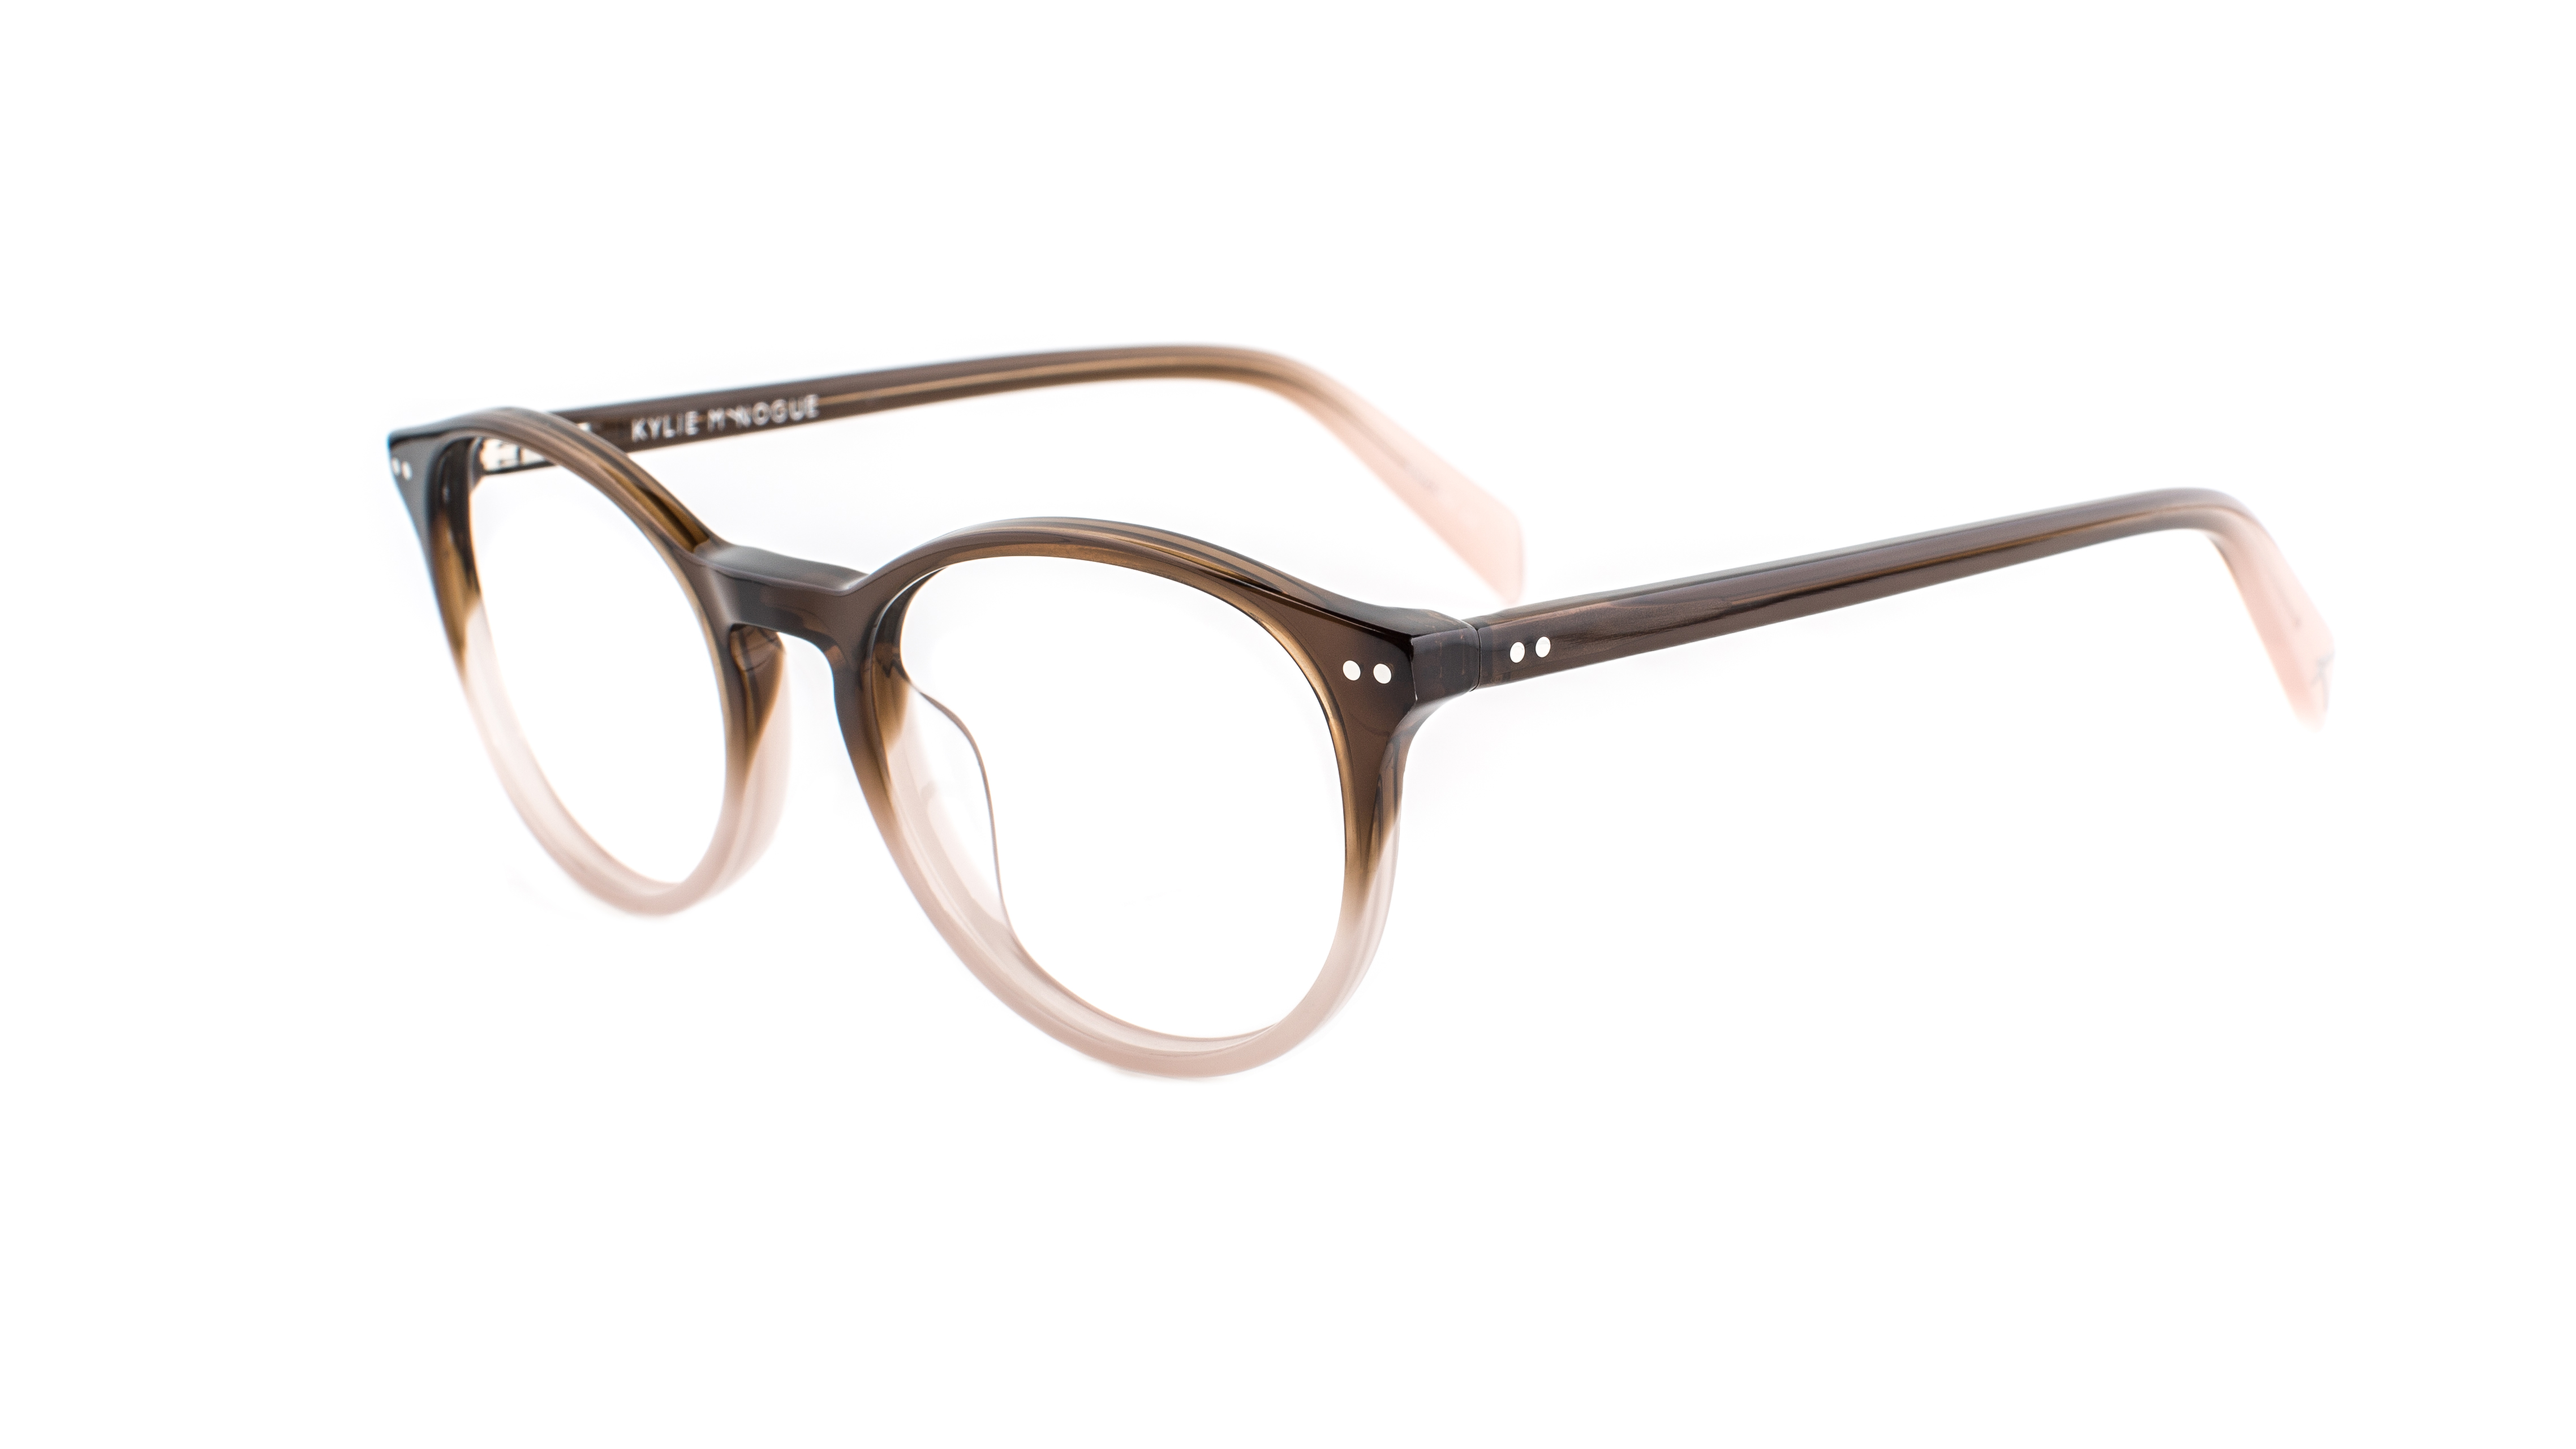 Kylie Minogue Eyewear_Kylie 12_SKU 30520271_RRP 2 pairs from $369 (2)